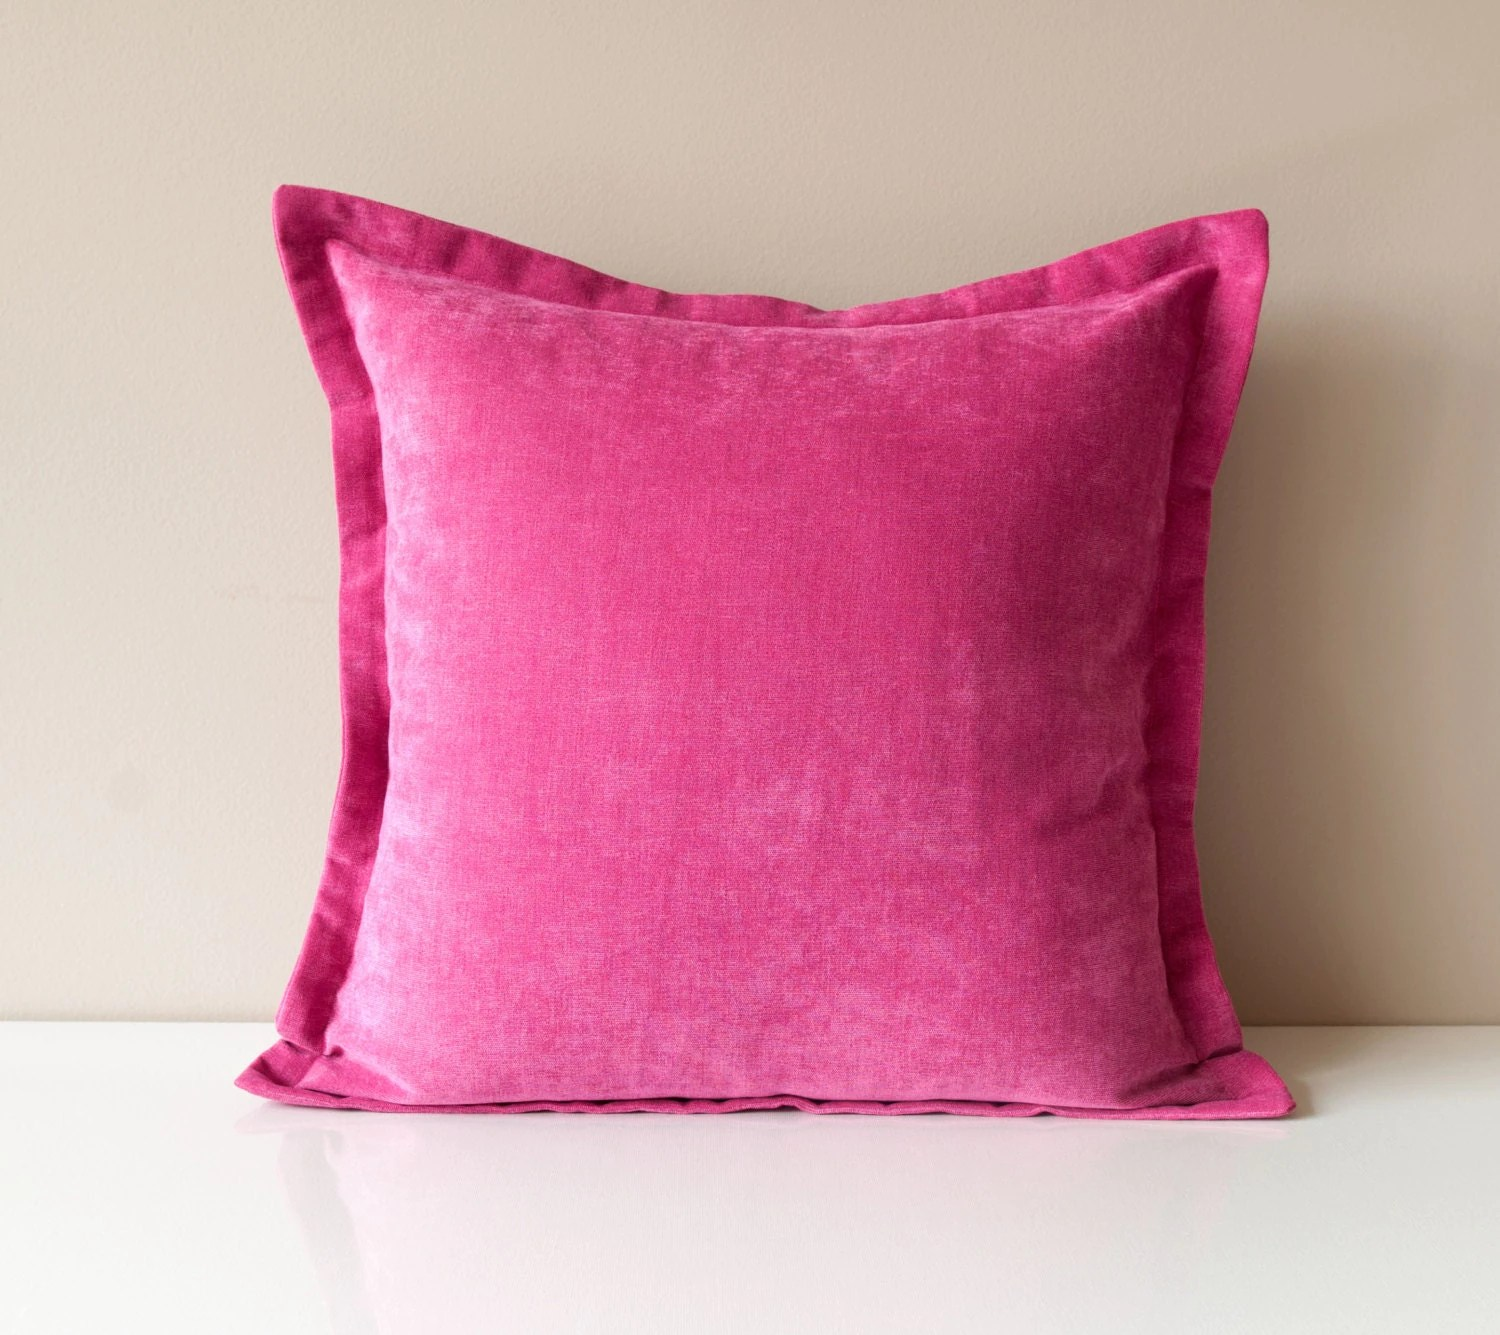 pink throw pillows for sofa sectional clips velvet pillow cover solid by onehappypillow